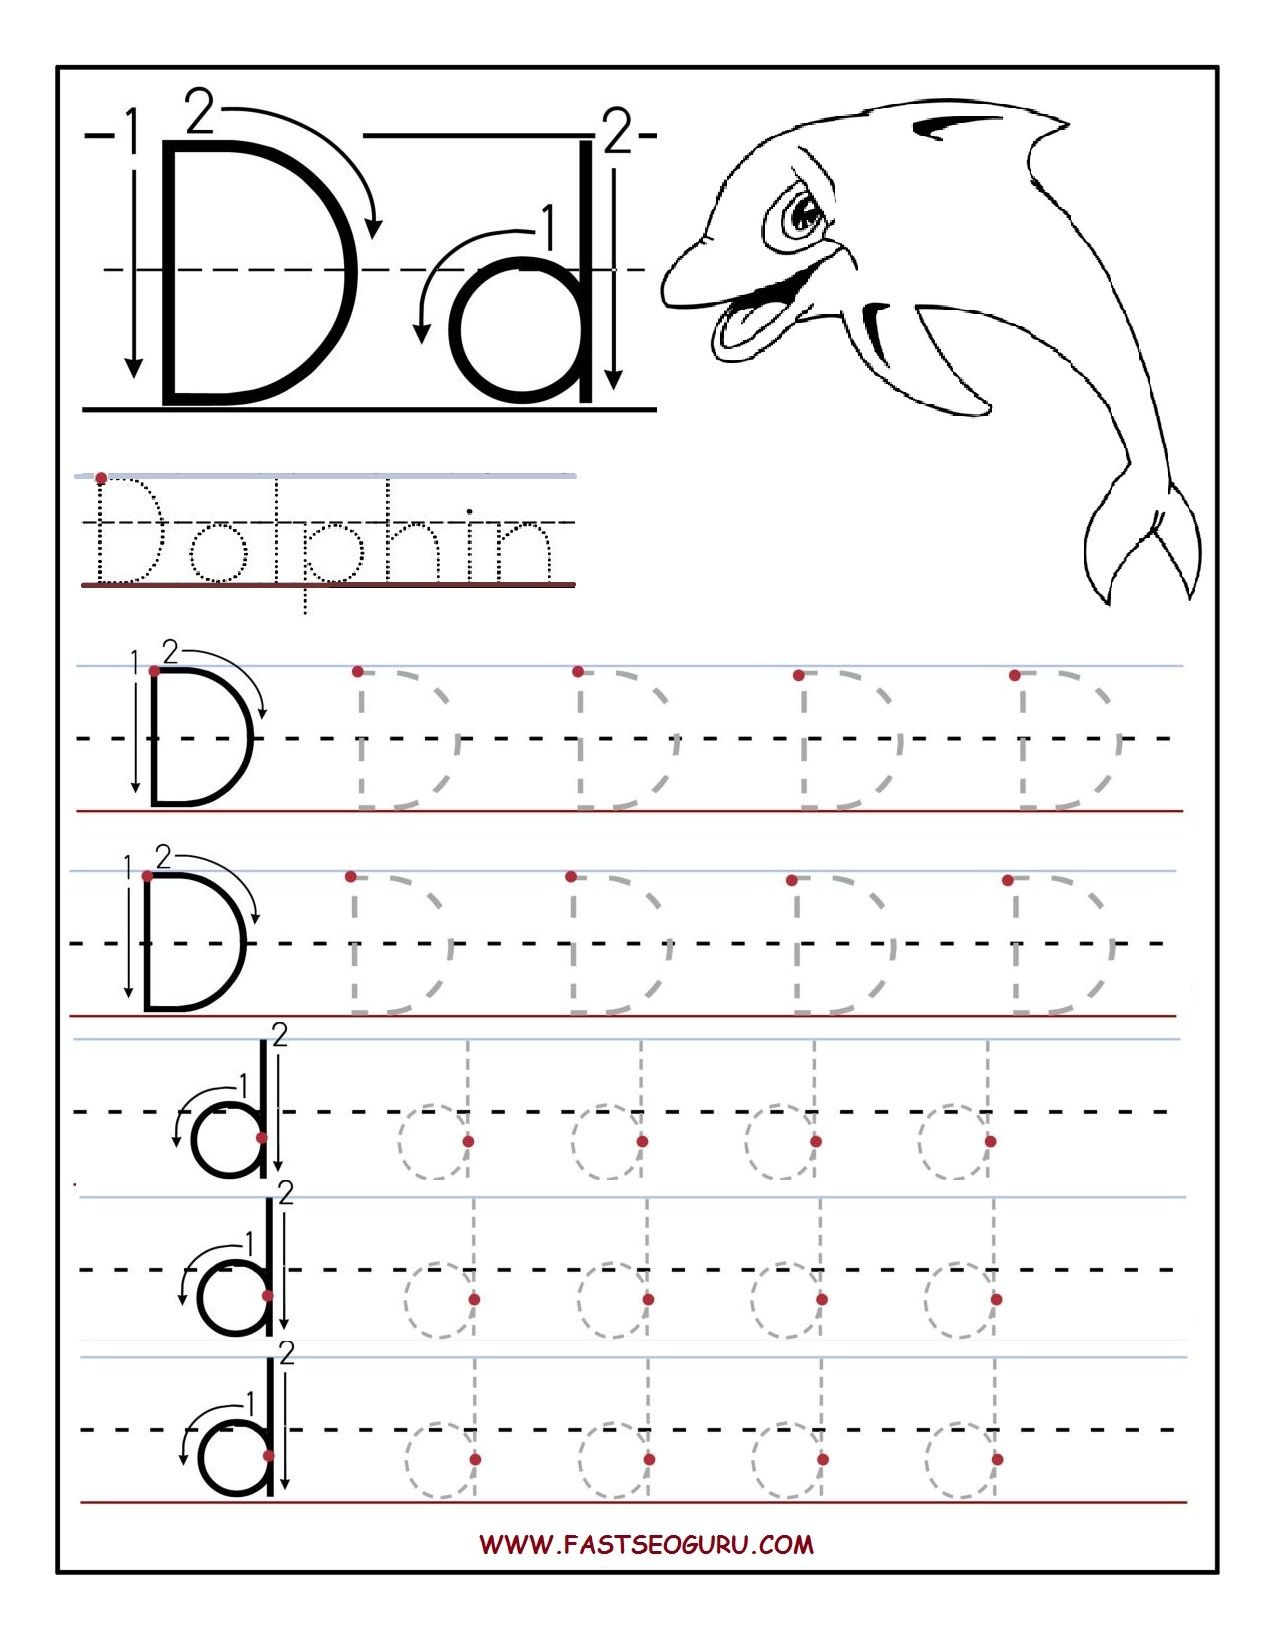 worksheet Alphabet Worksheet preschool alphabet worksheets printables printable letter a a